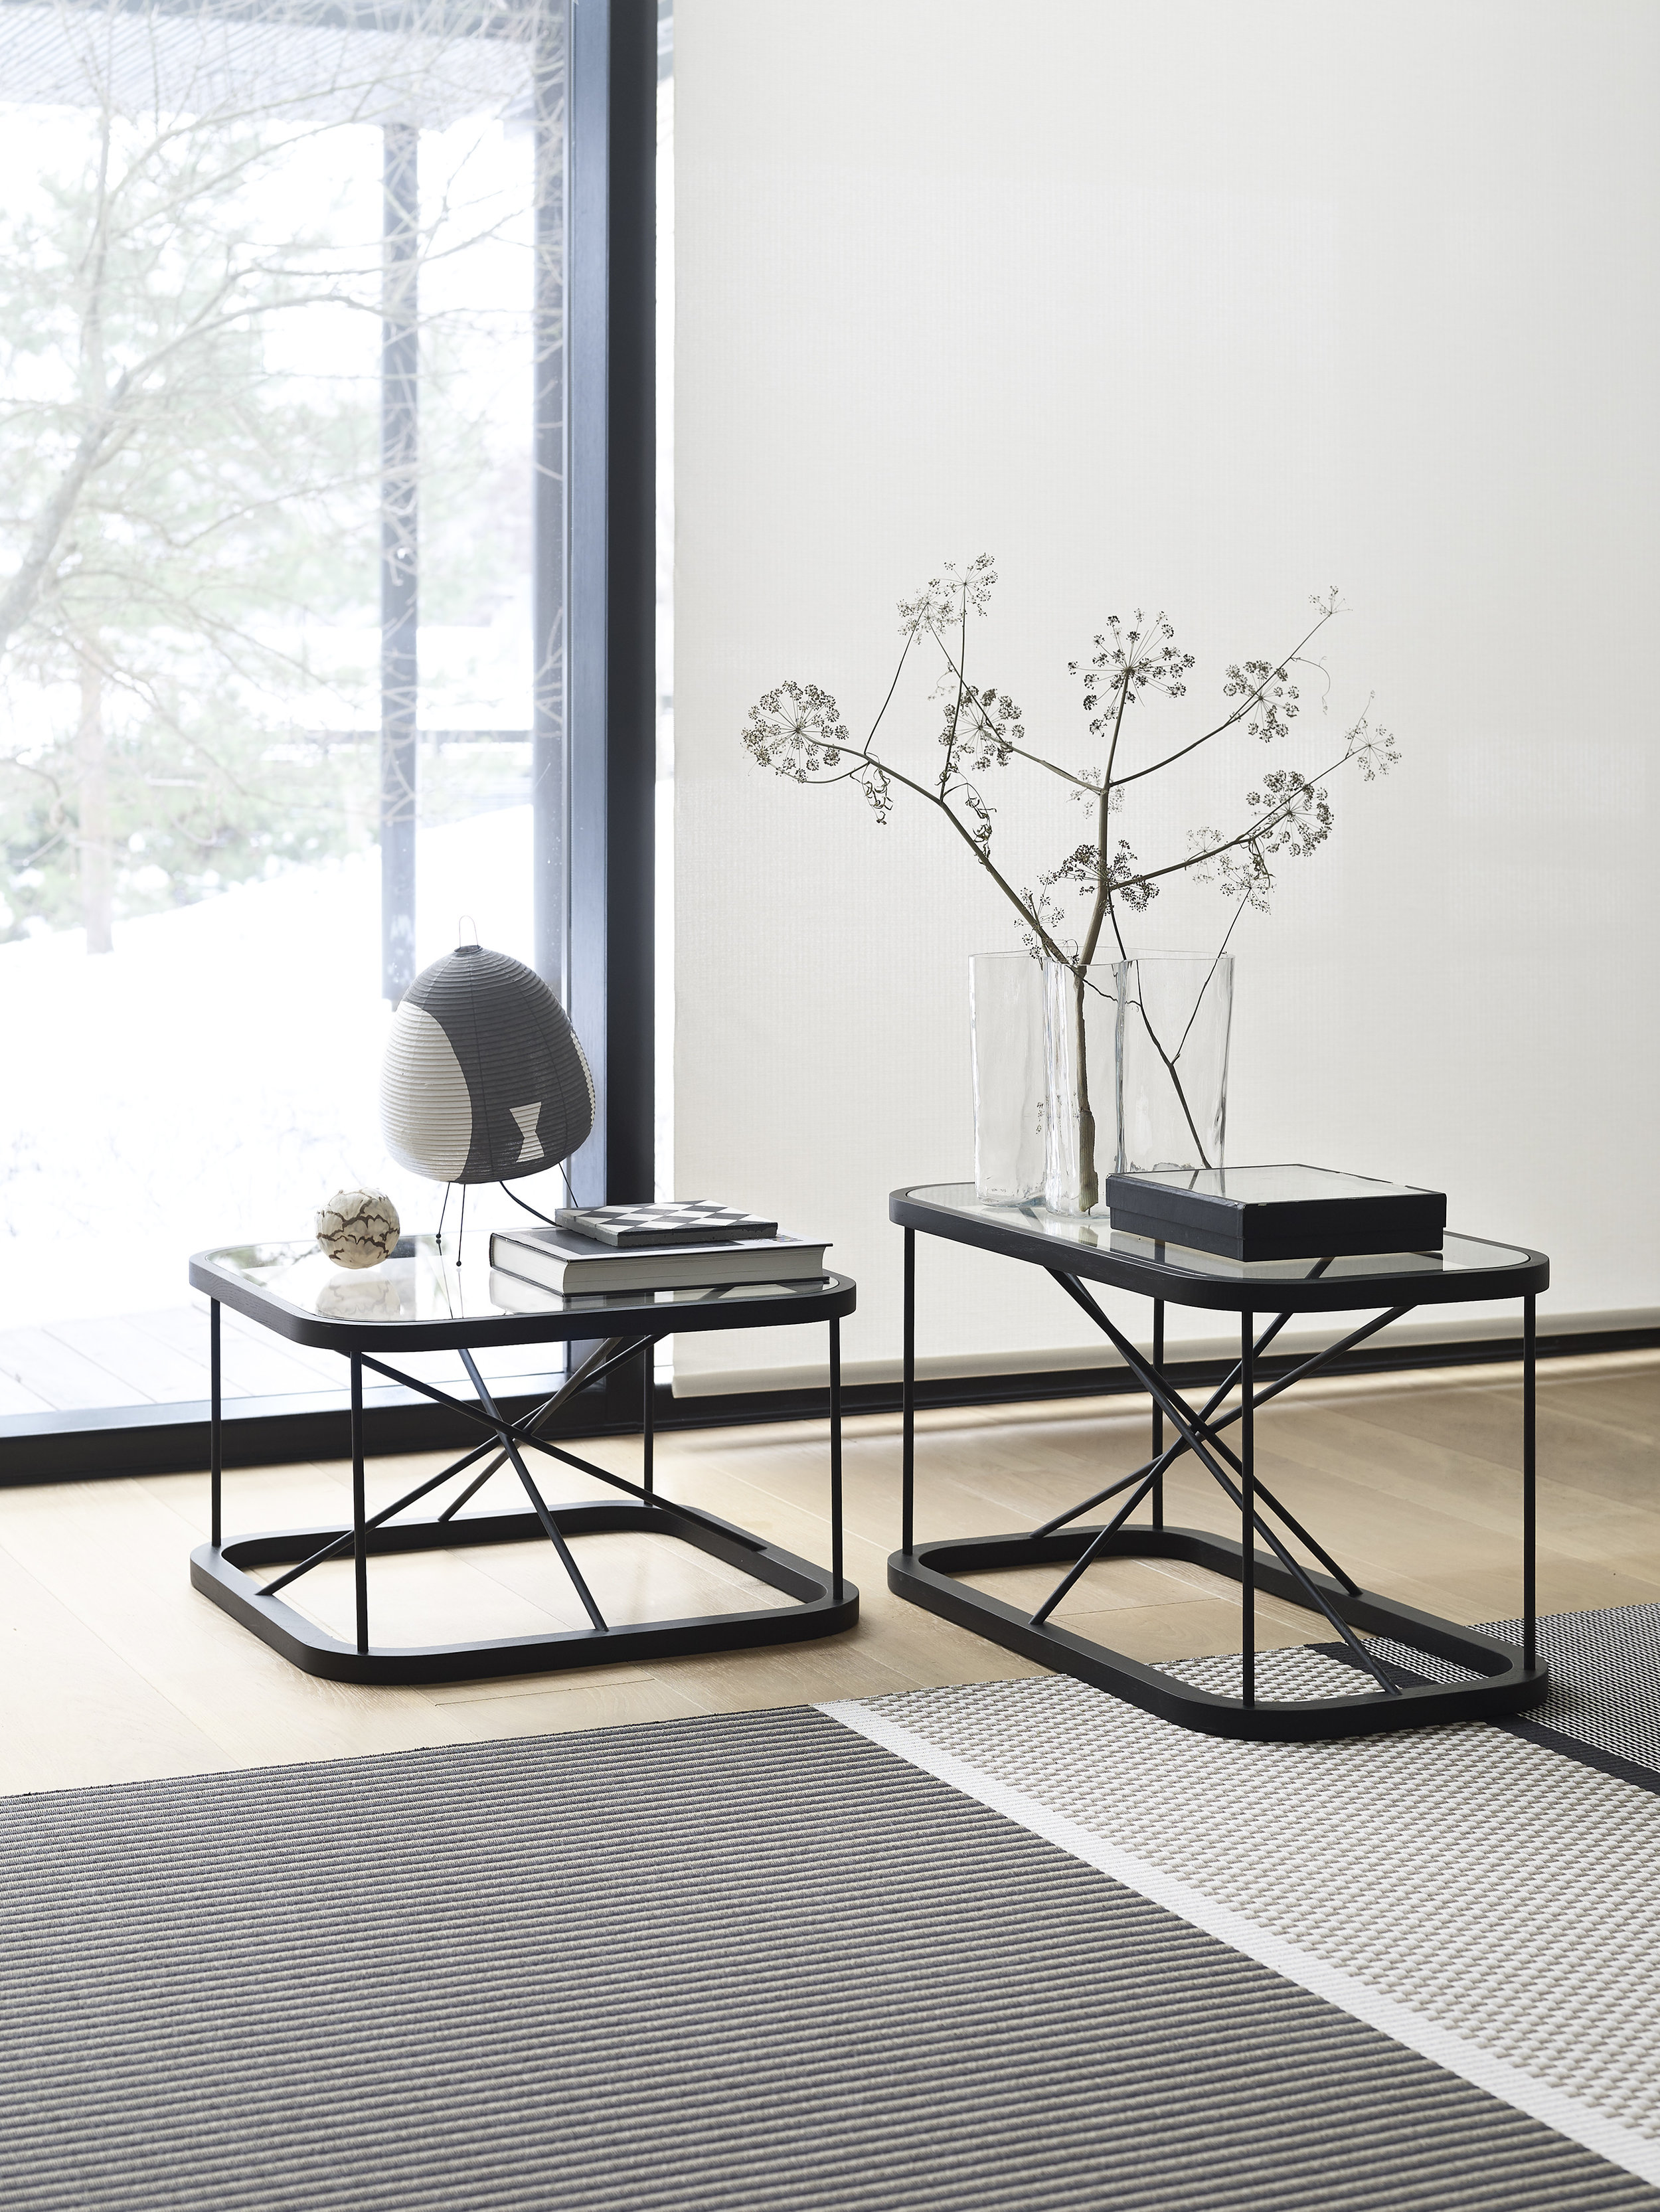 Stained black  Twiggy oak tables , size 66,5x66,5x38,5 cm and 44x88x45,5 cm, together with  San Francisco  paper yarn carpet col. 1433215 nutria-stone.